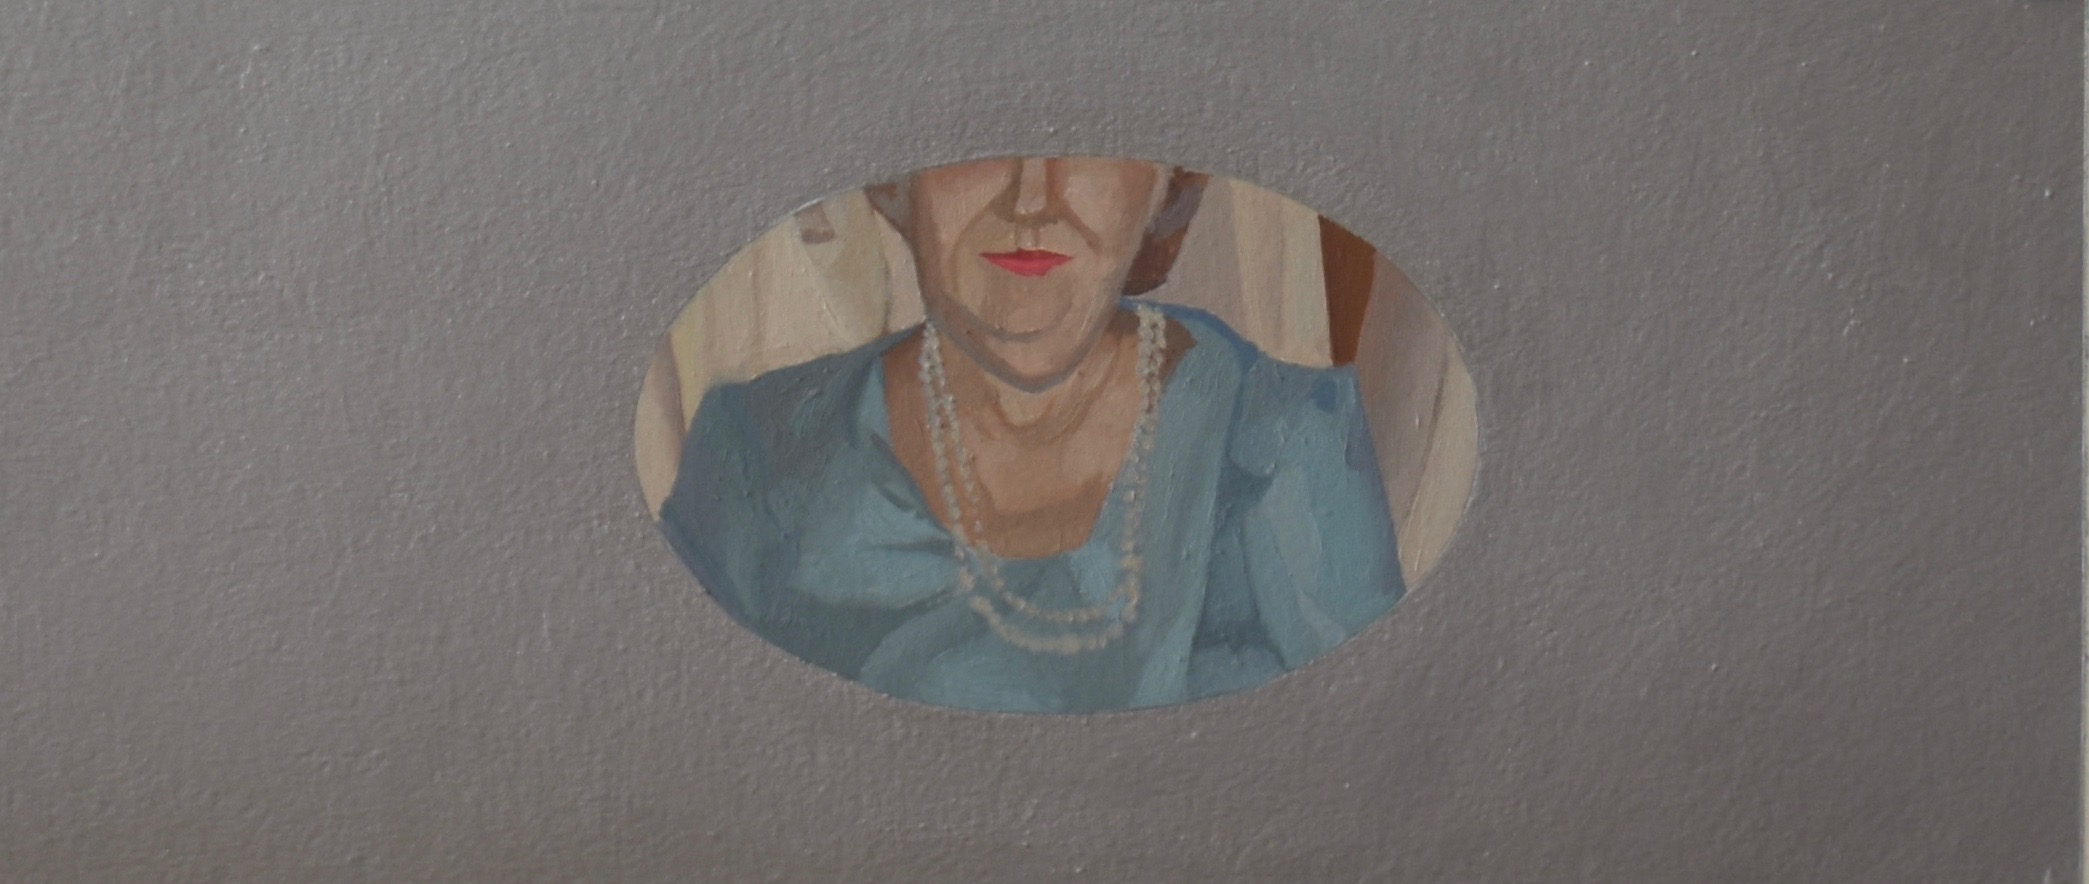 Portrait of Advancing Years  2015, oil, aluminum powder, and marble dust on Arches, 12 in. X 4 in.  Frames have been a recurring theme on my easel. I was particularly interested in how the silver paint reacted to the light, allowing the real world to alter the appearance of the miniature portrait at its center. This painting embodies exclusion and hyper-focus, encircled by a thick metallic plane.